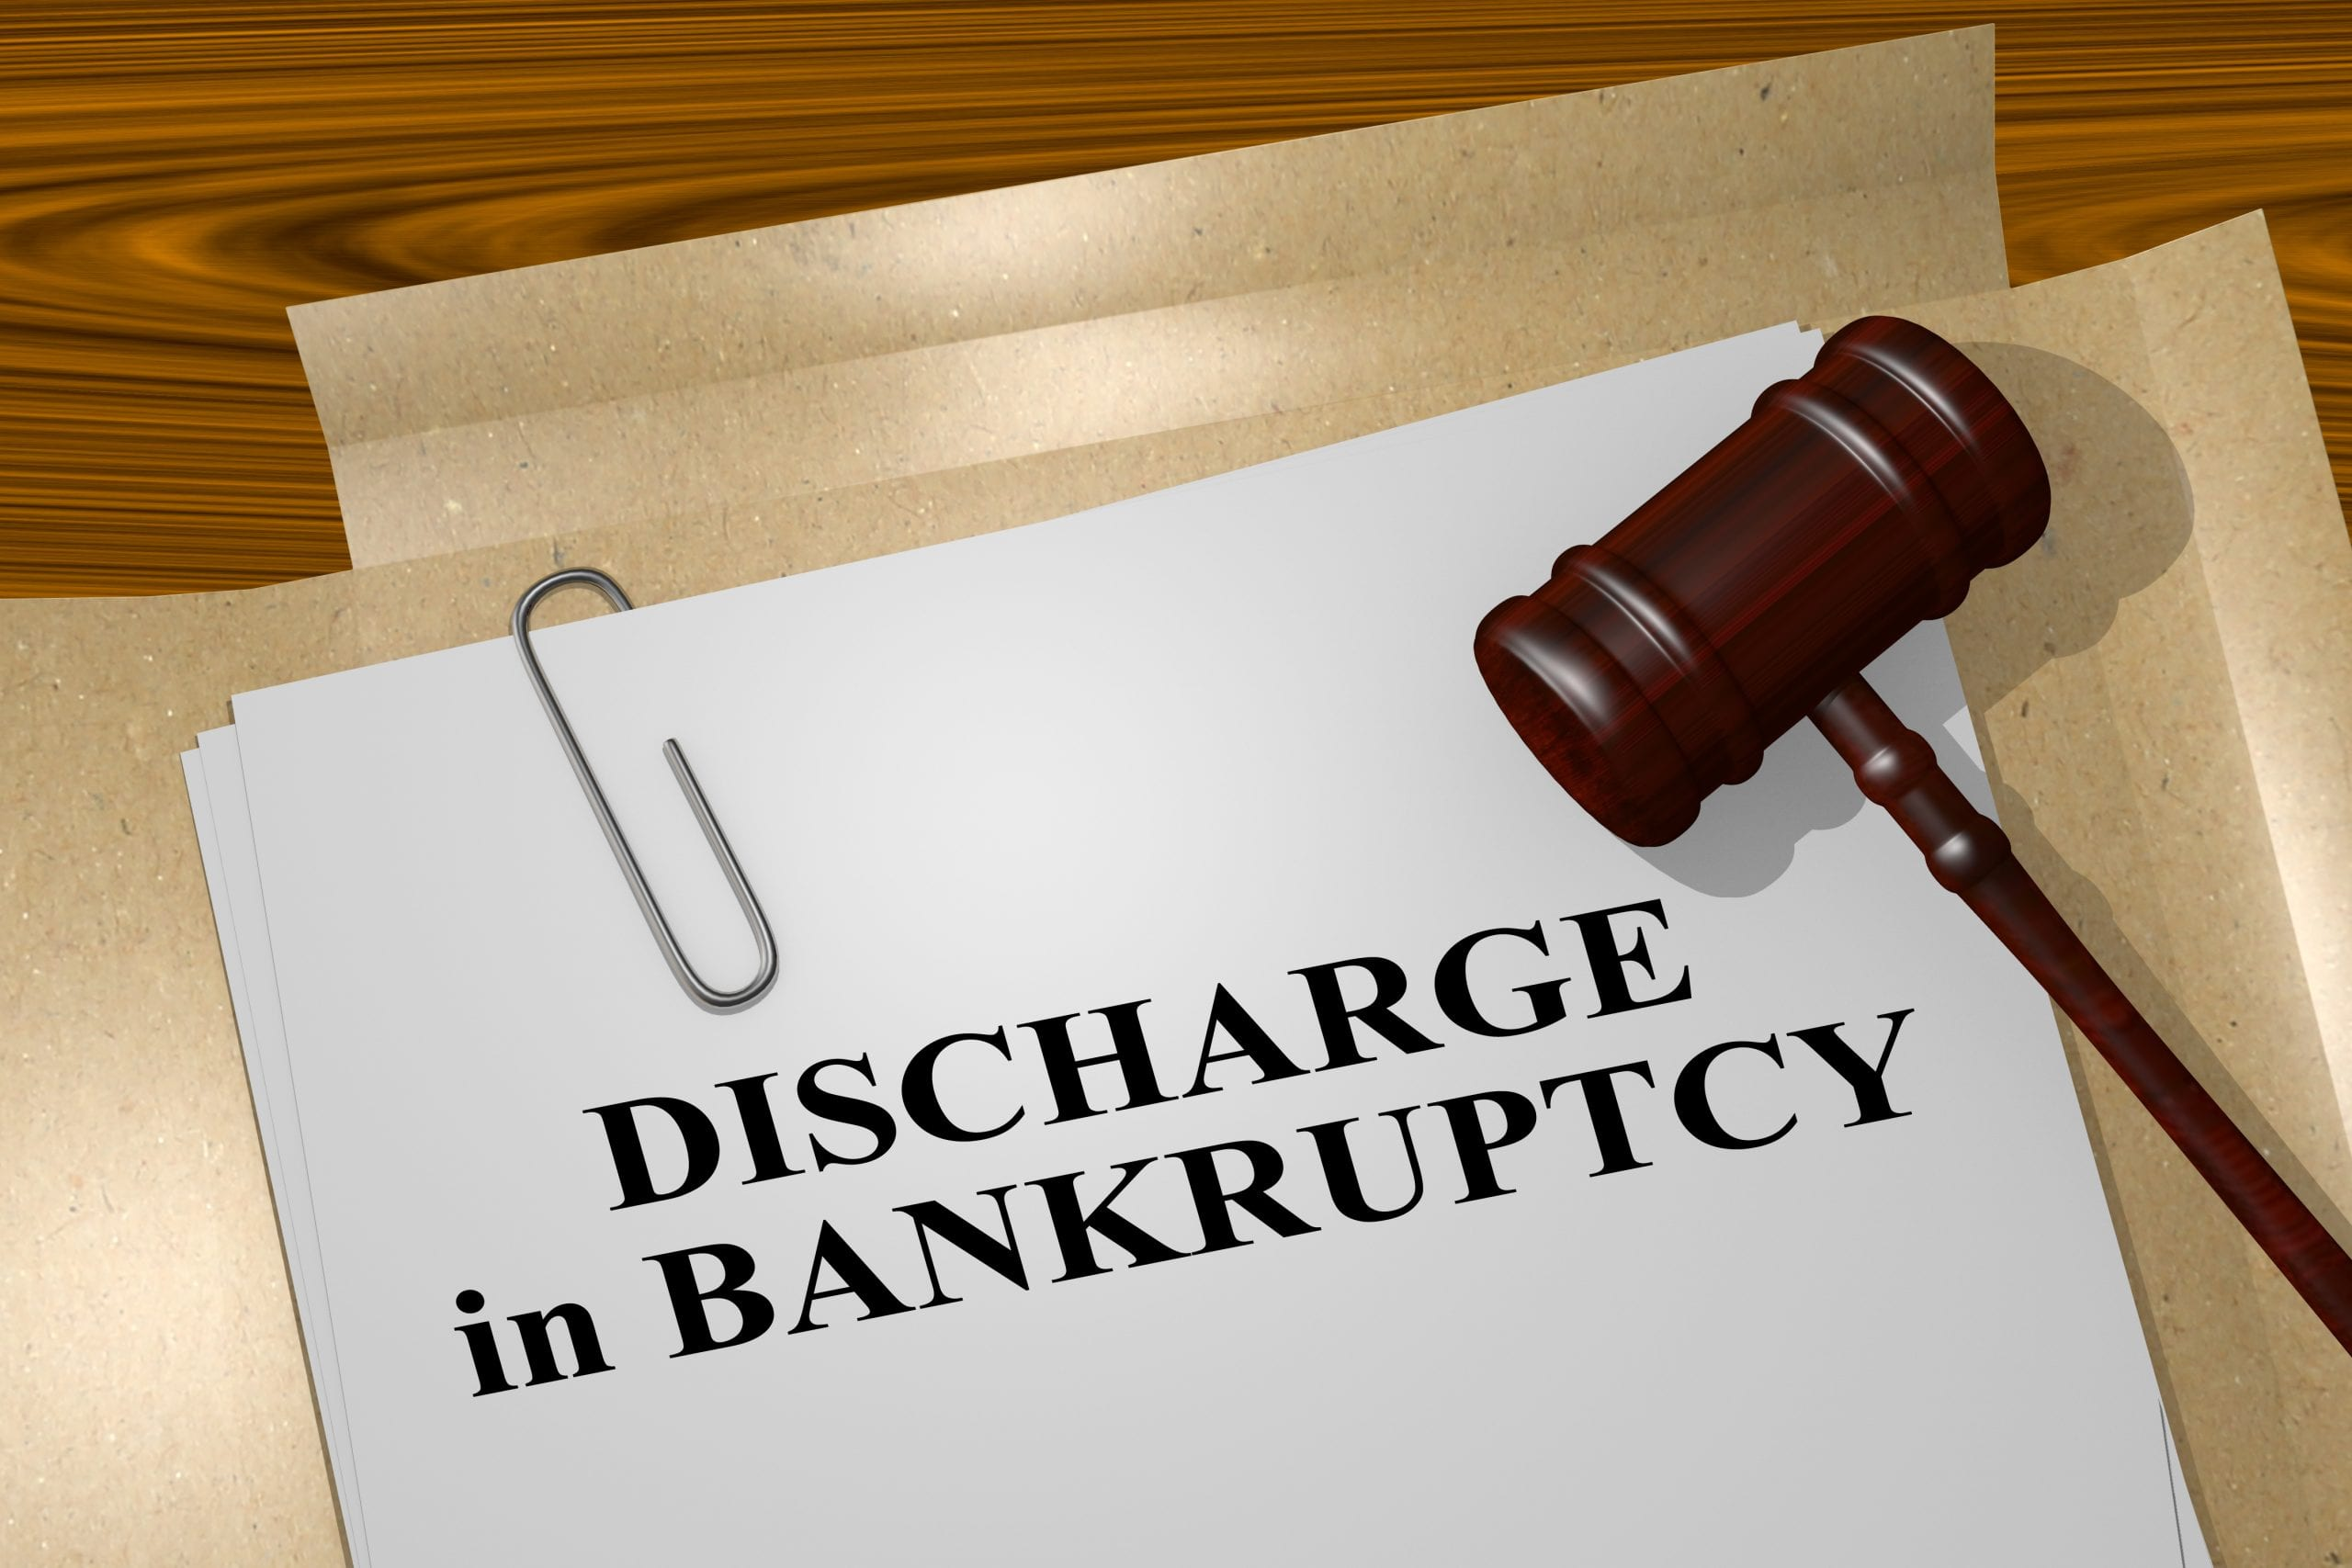 discharge-bankruptcy-debtor-creditor-rights-effects